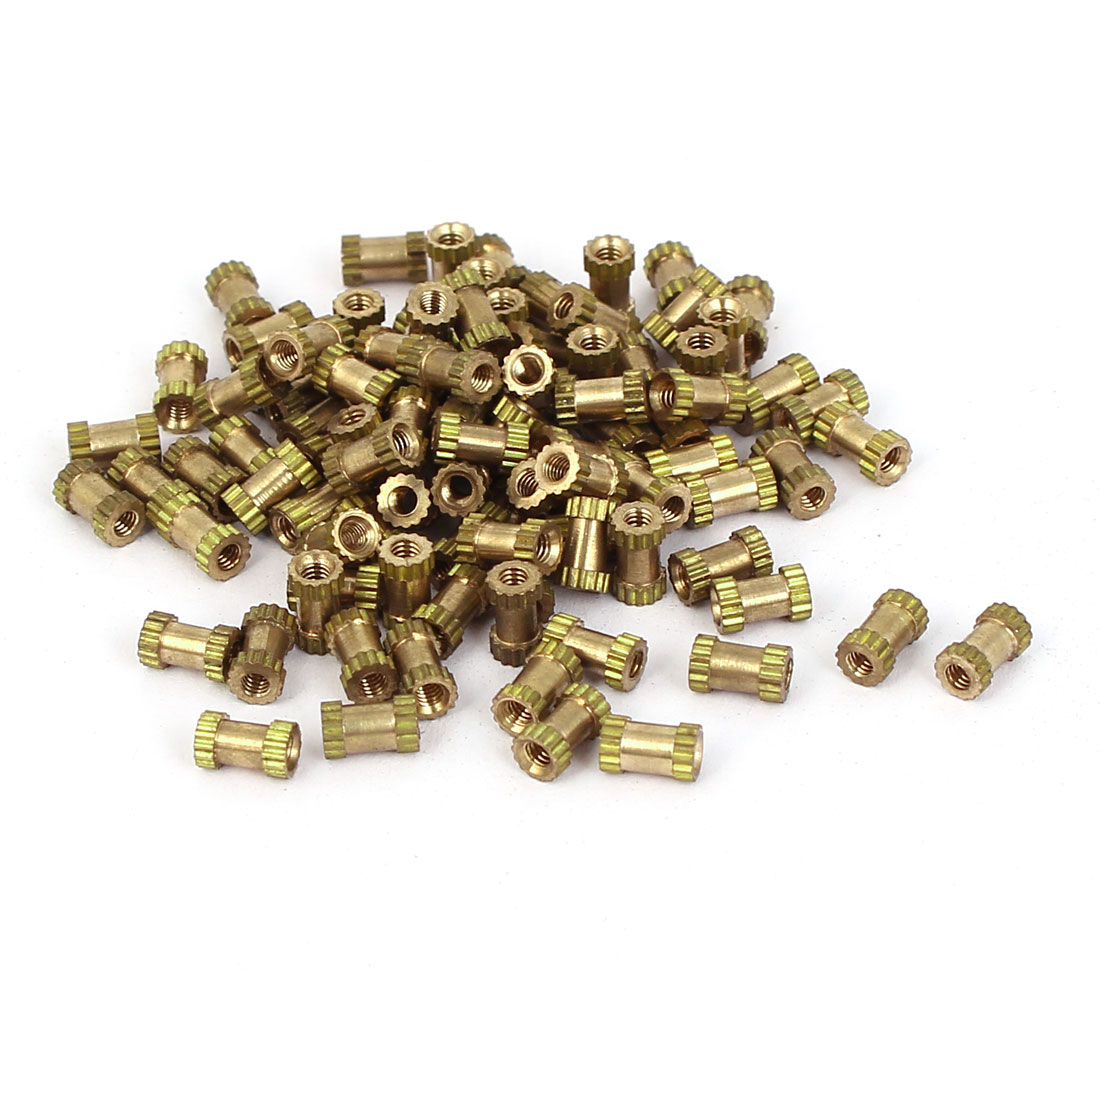 M2x6mm 4mm OD Brass Embedded Knurled Insert Thumb Nuts 100pcs